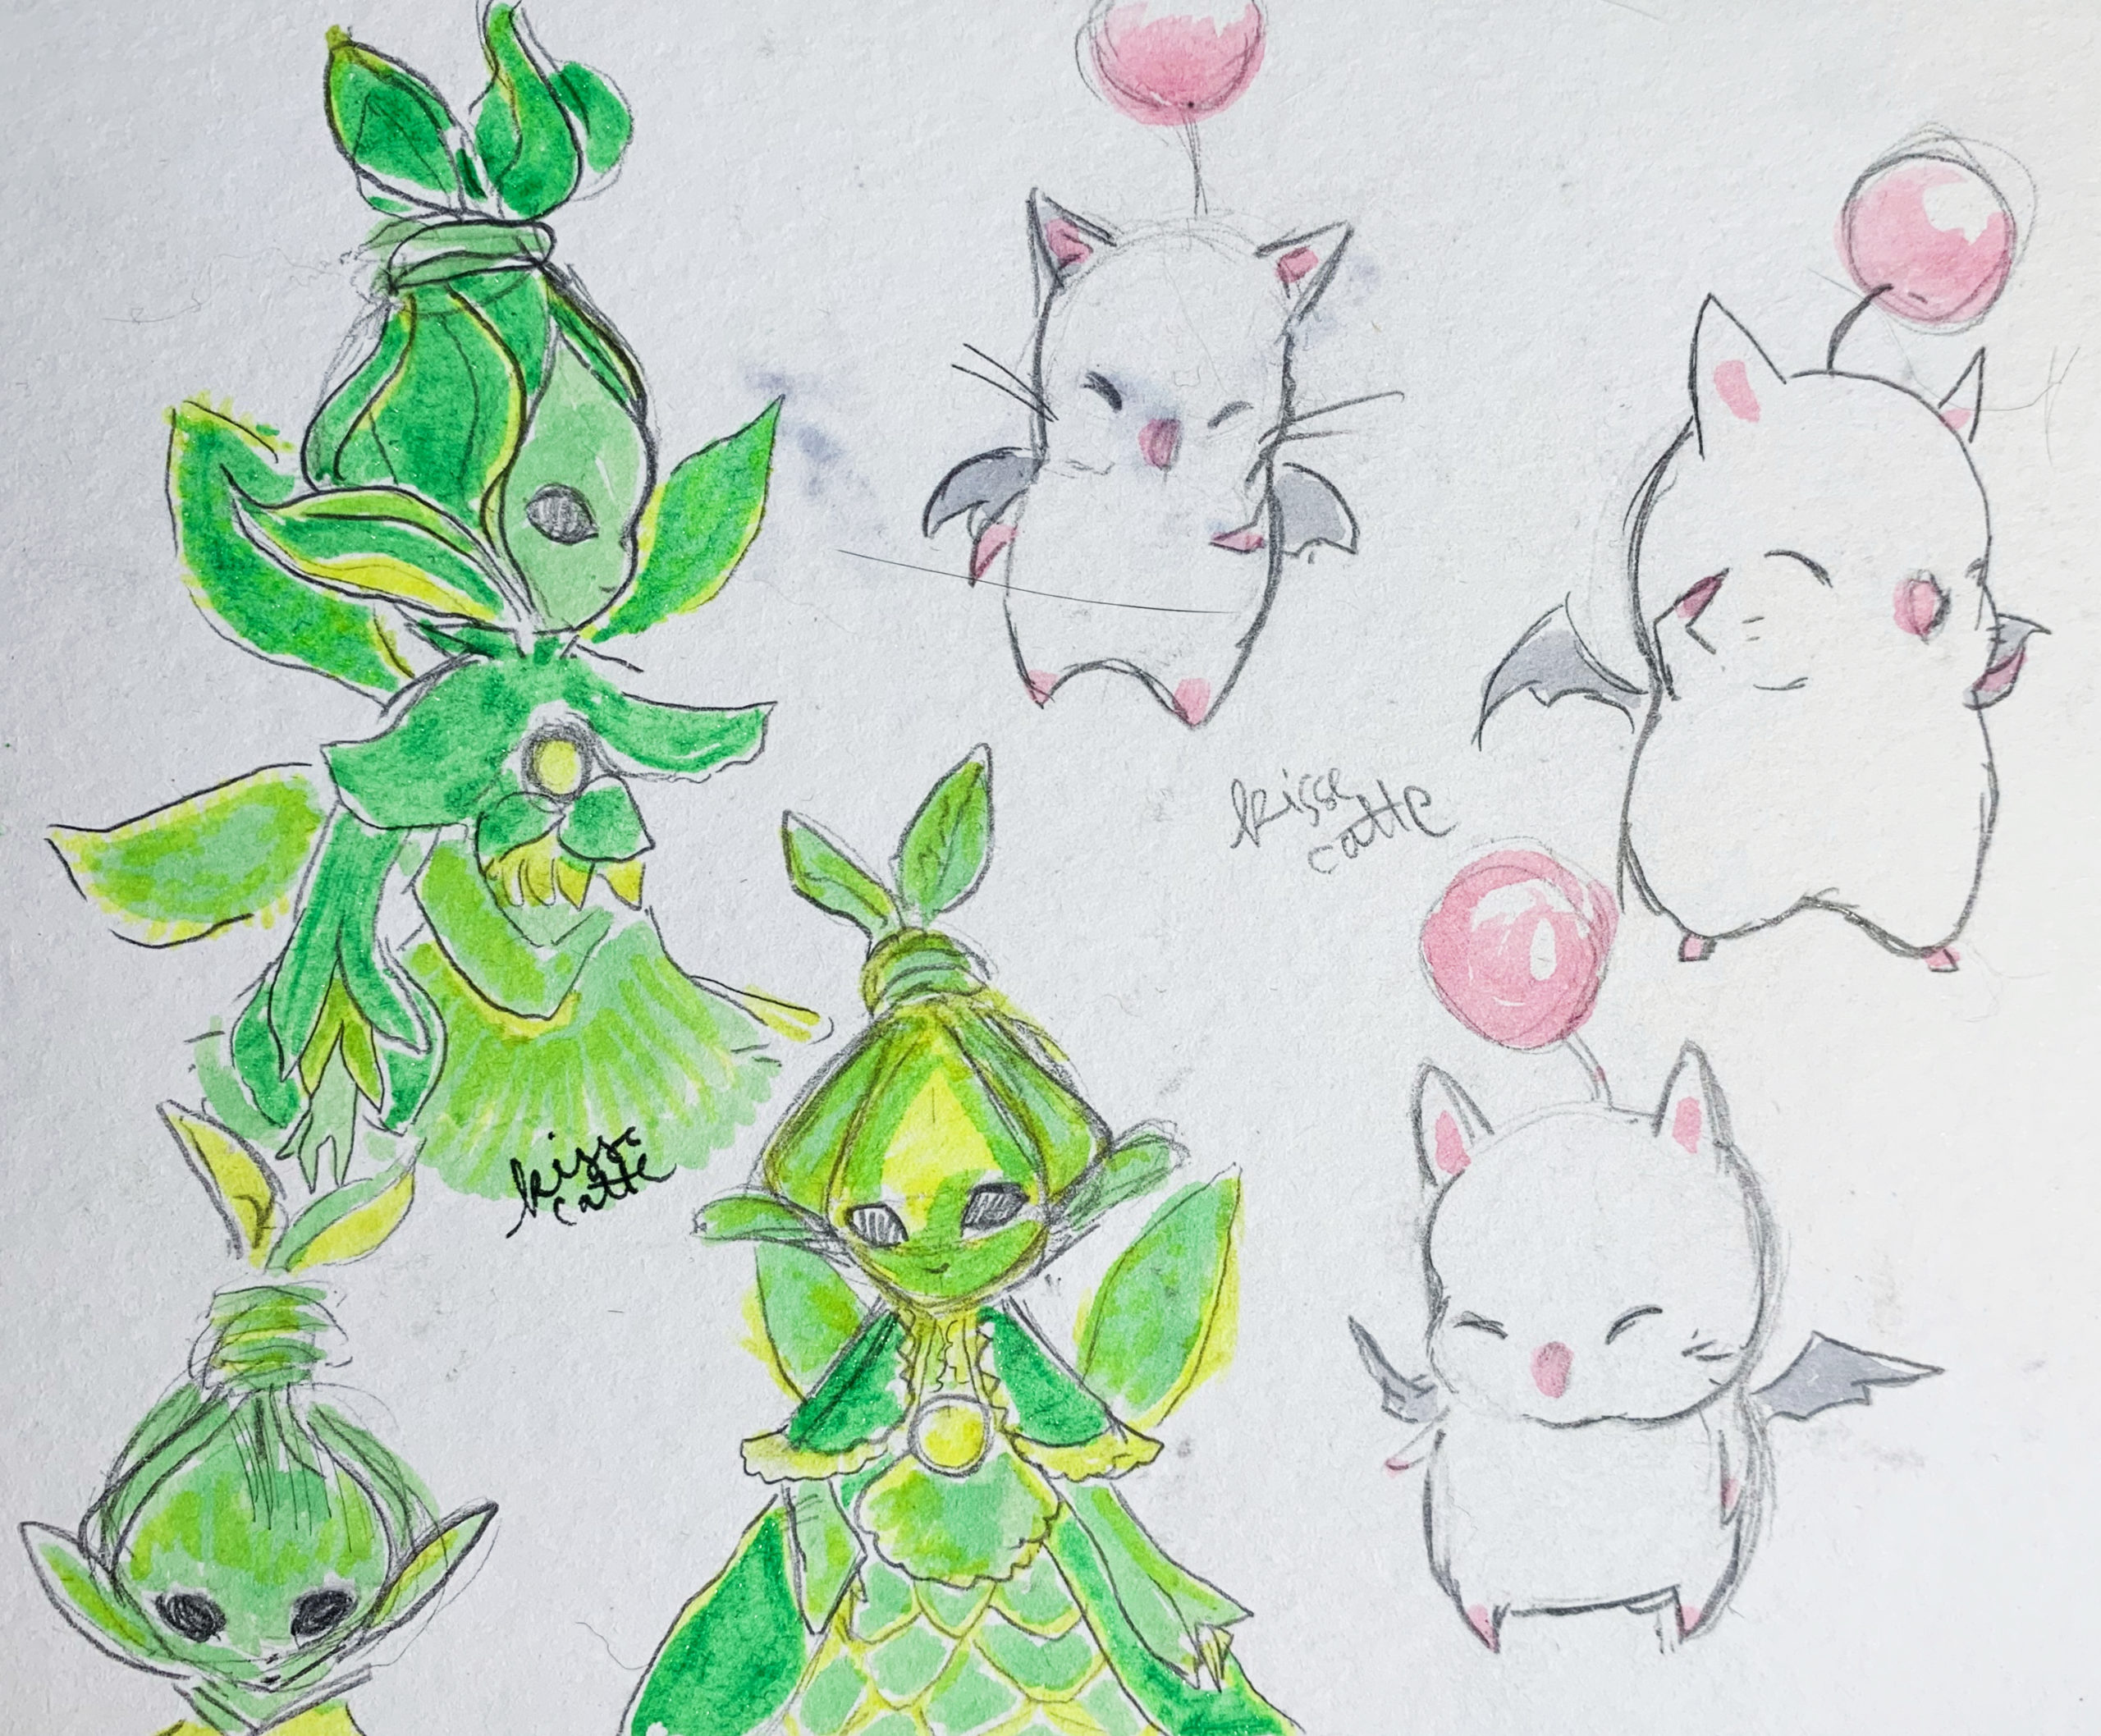 moogles and sylphs from ffxiv drawn by kissecatte